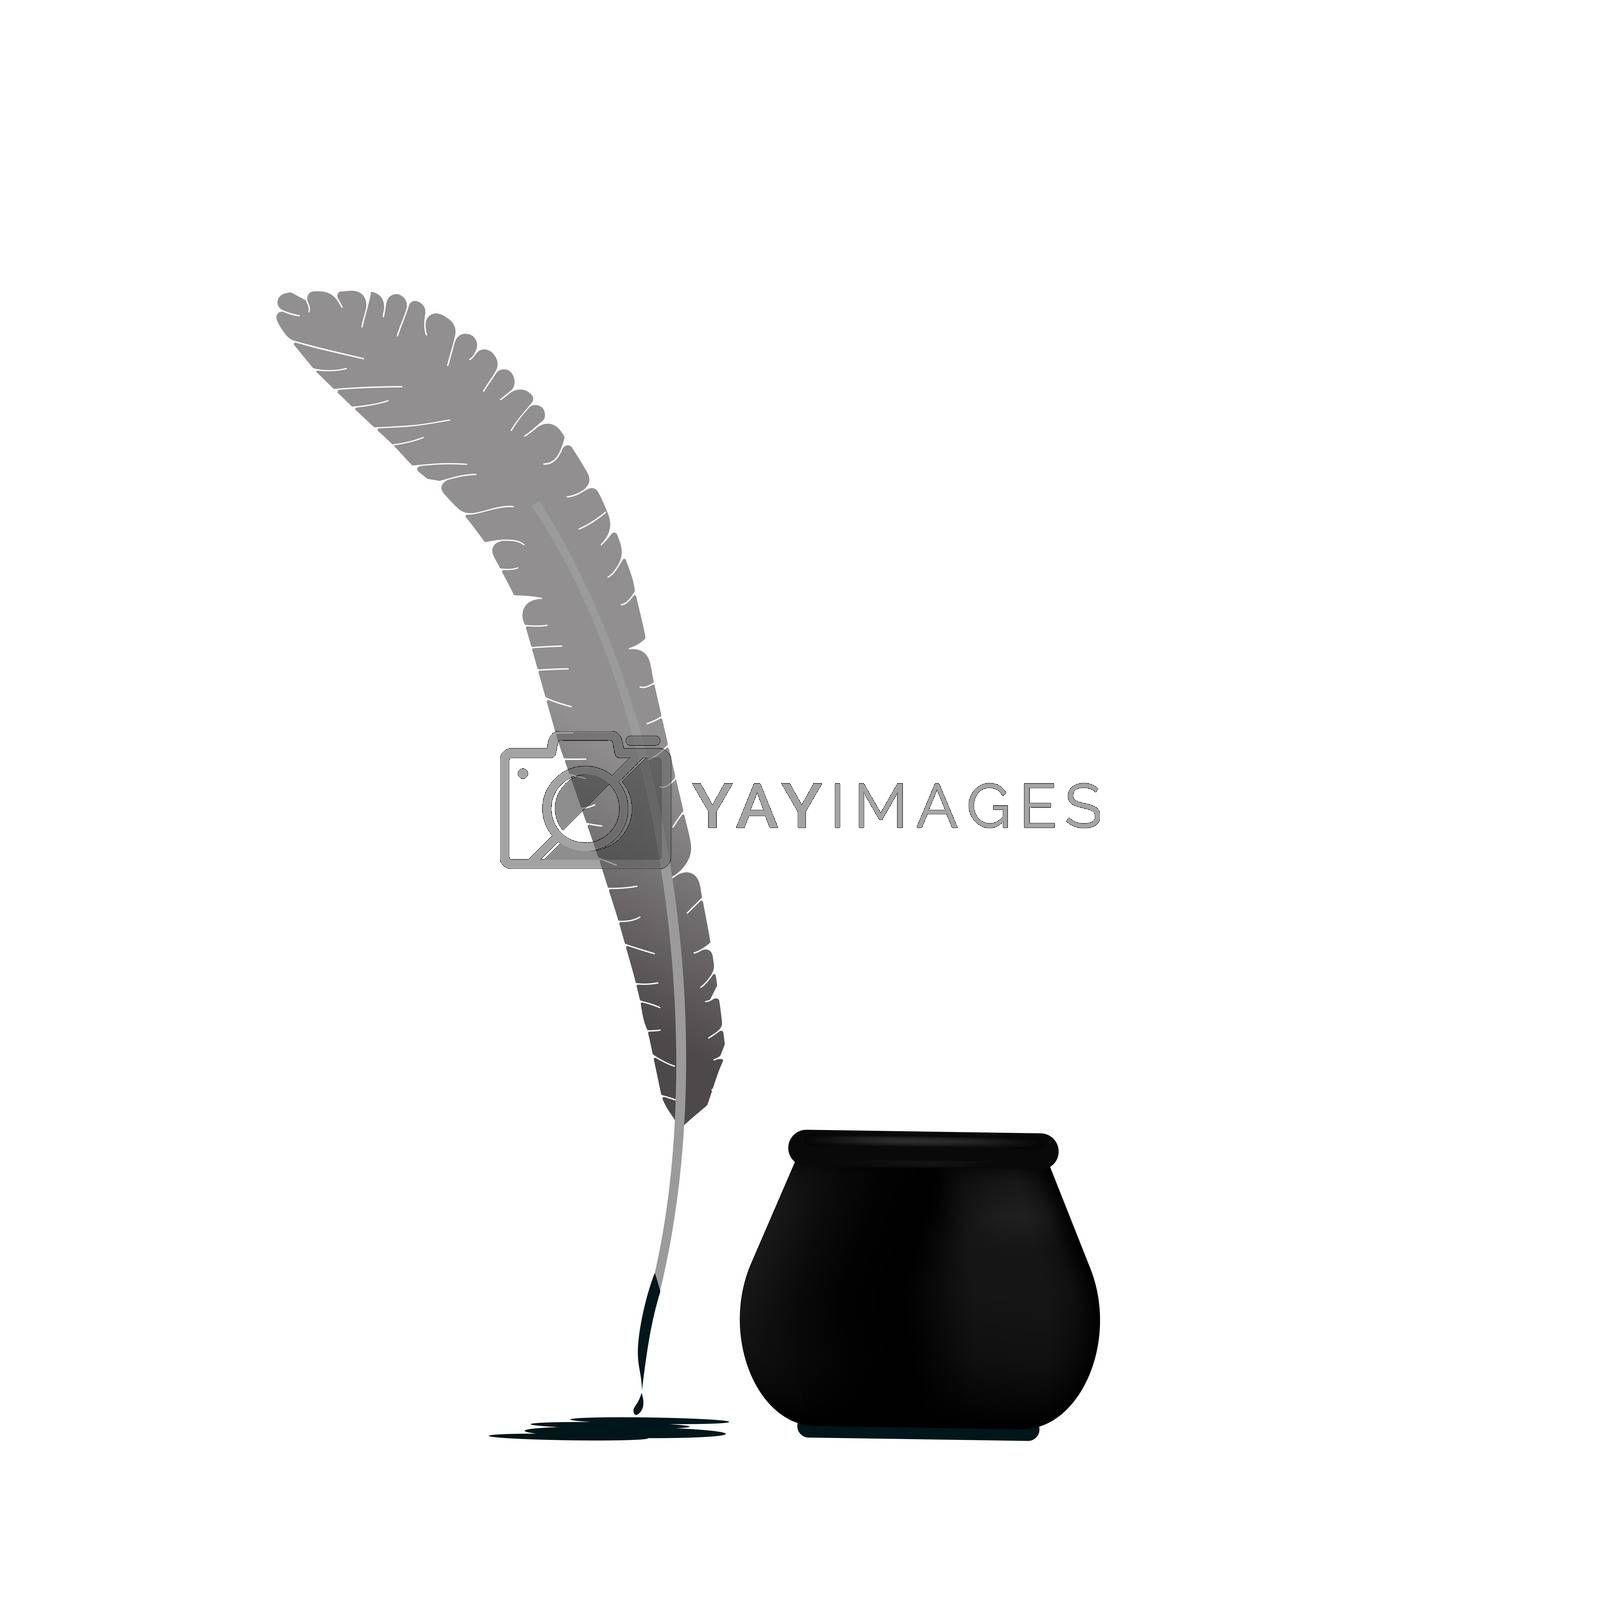 Ink with pen icon isolated on white background illustration.